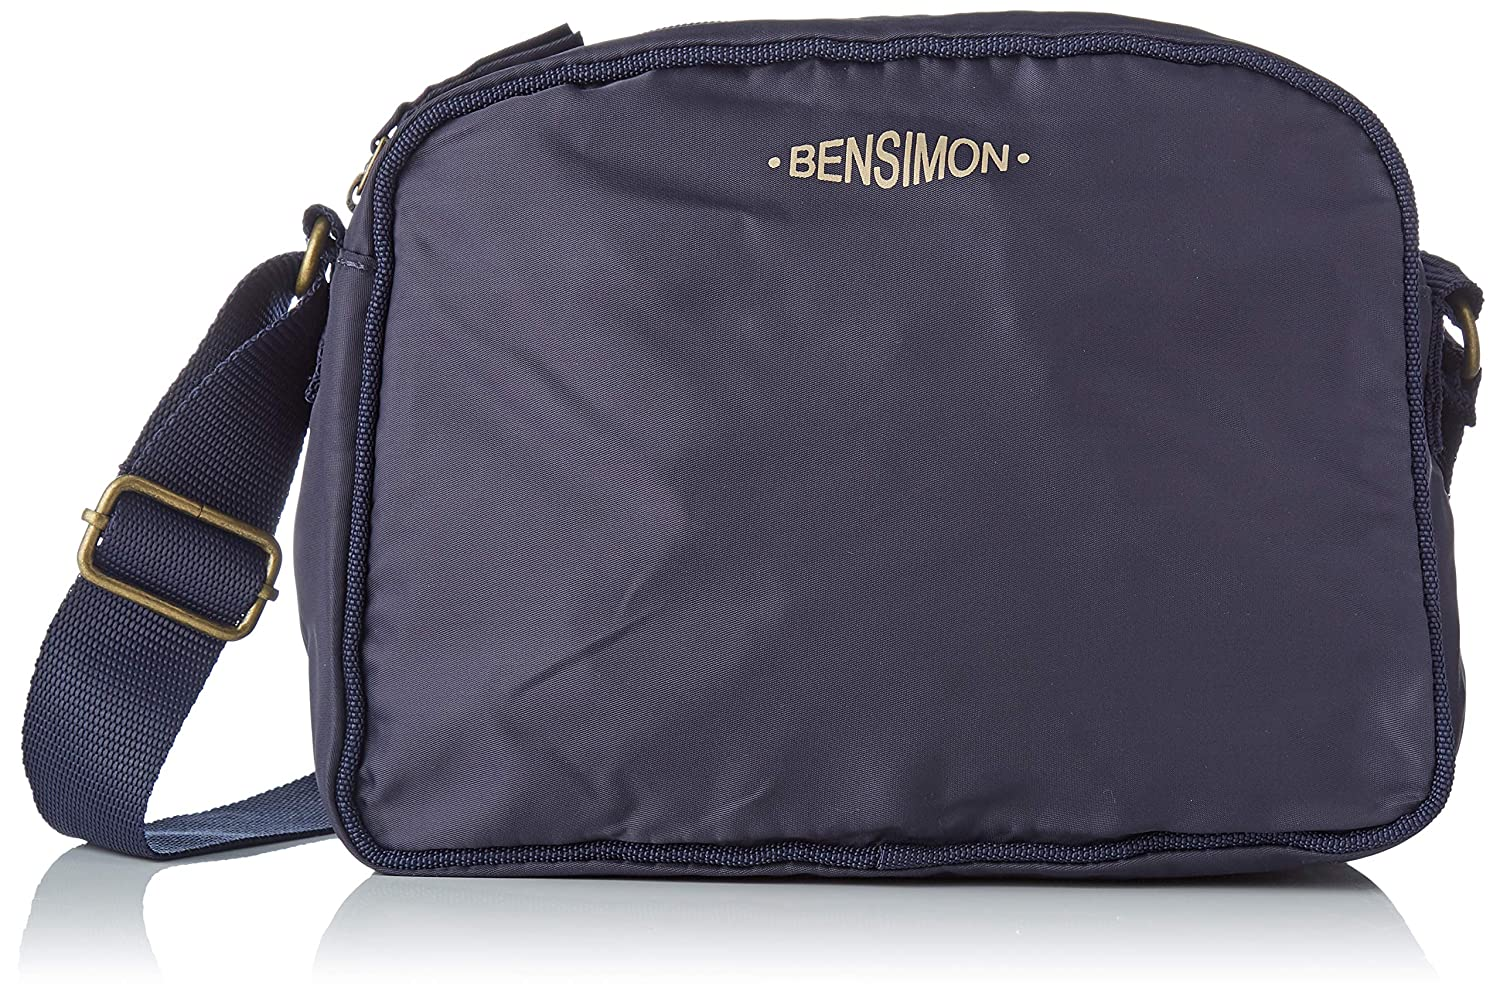 Bensimon Small Besace, Besaces F19236C45218